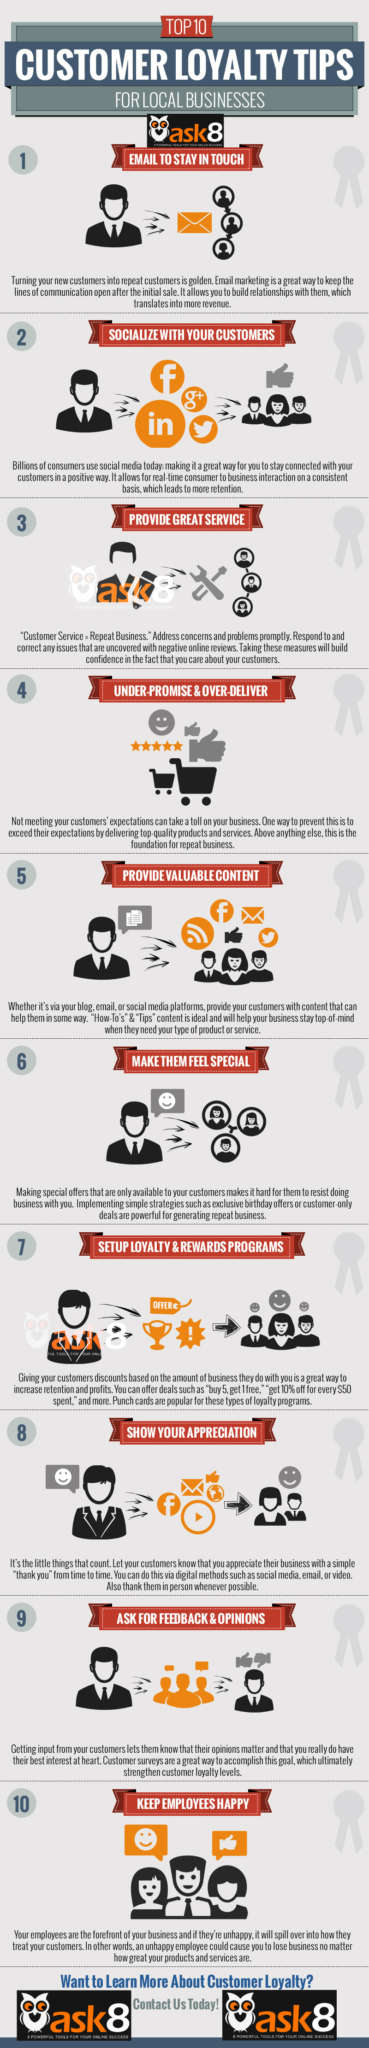 customer-loyalty-tips